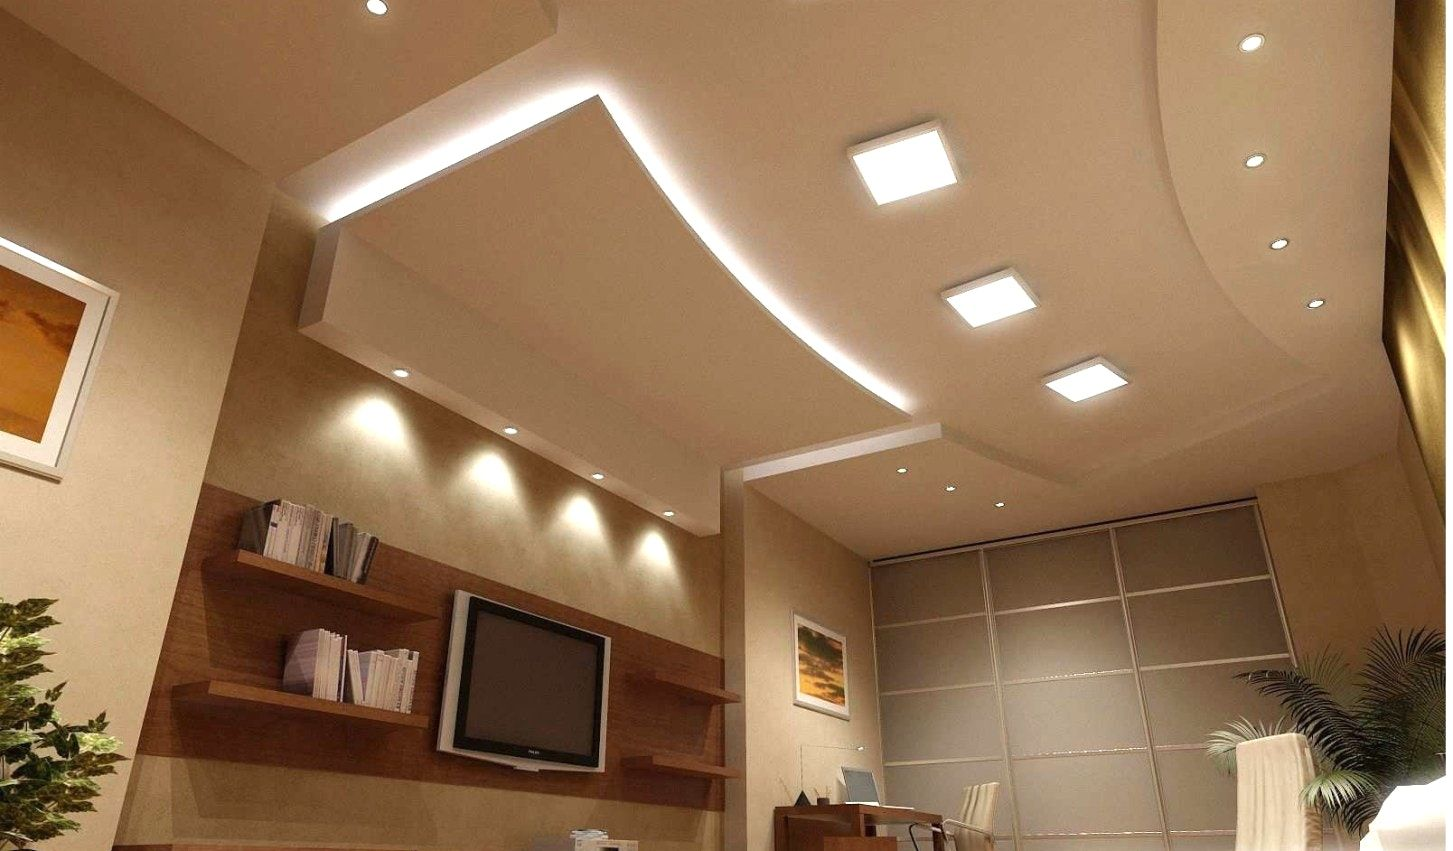 4 drop ceiling lighting options house pinterest drop ceiling 4 drop ceiling lighting options aloadofball Gallery